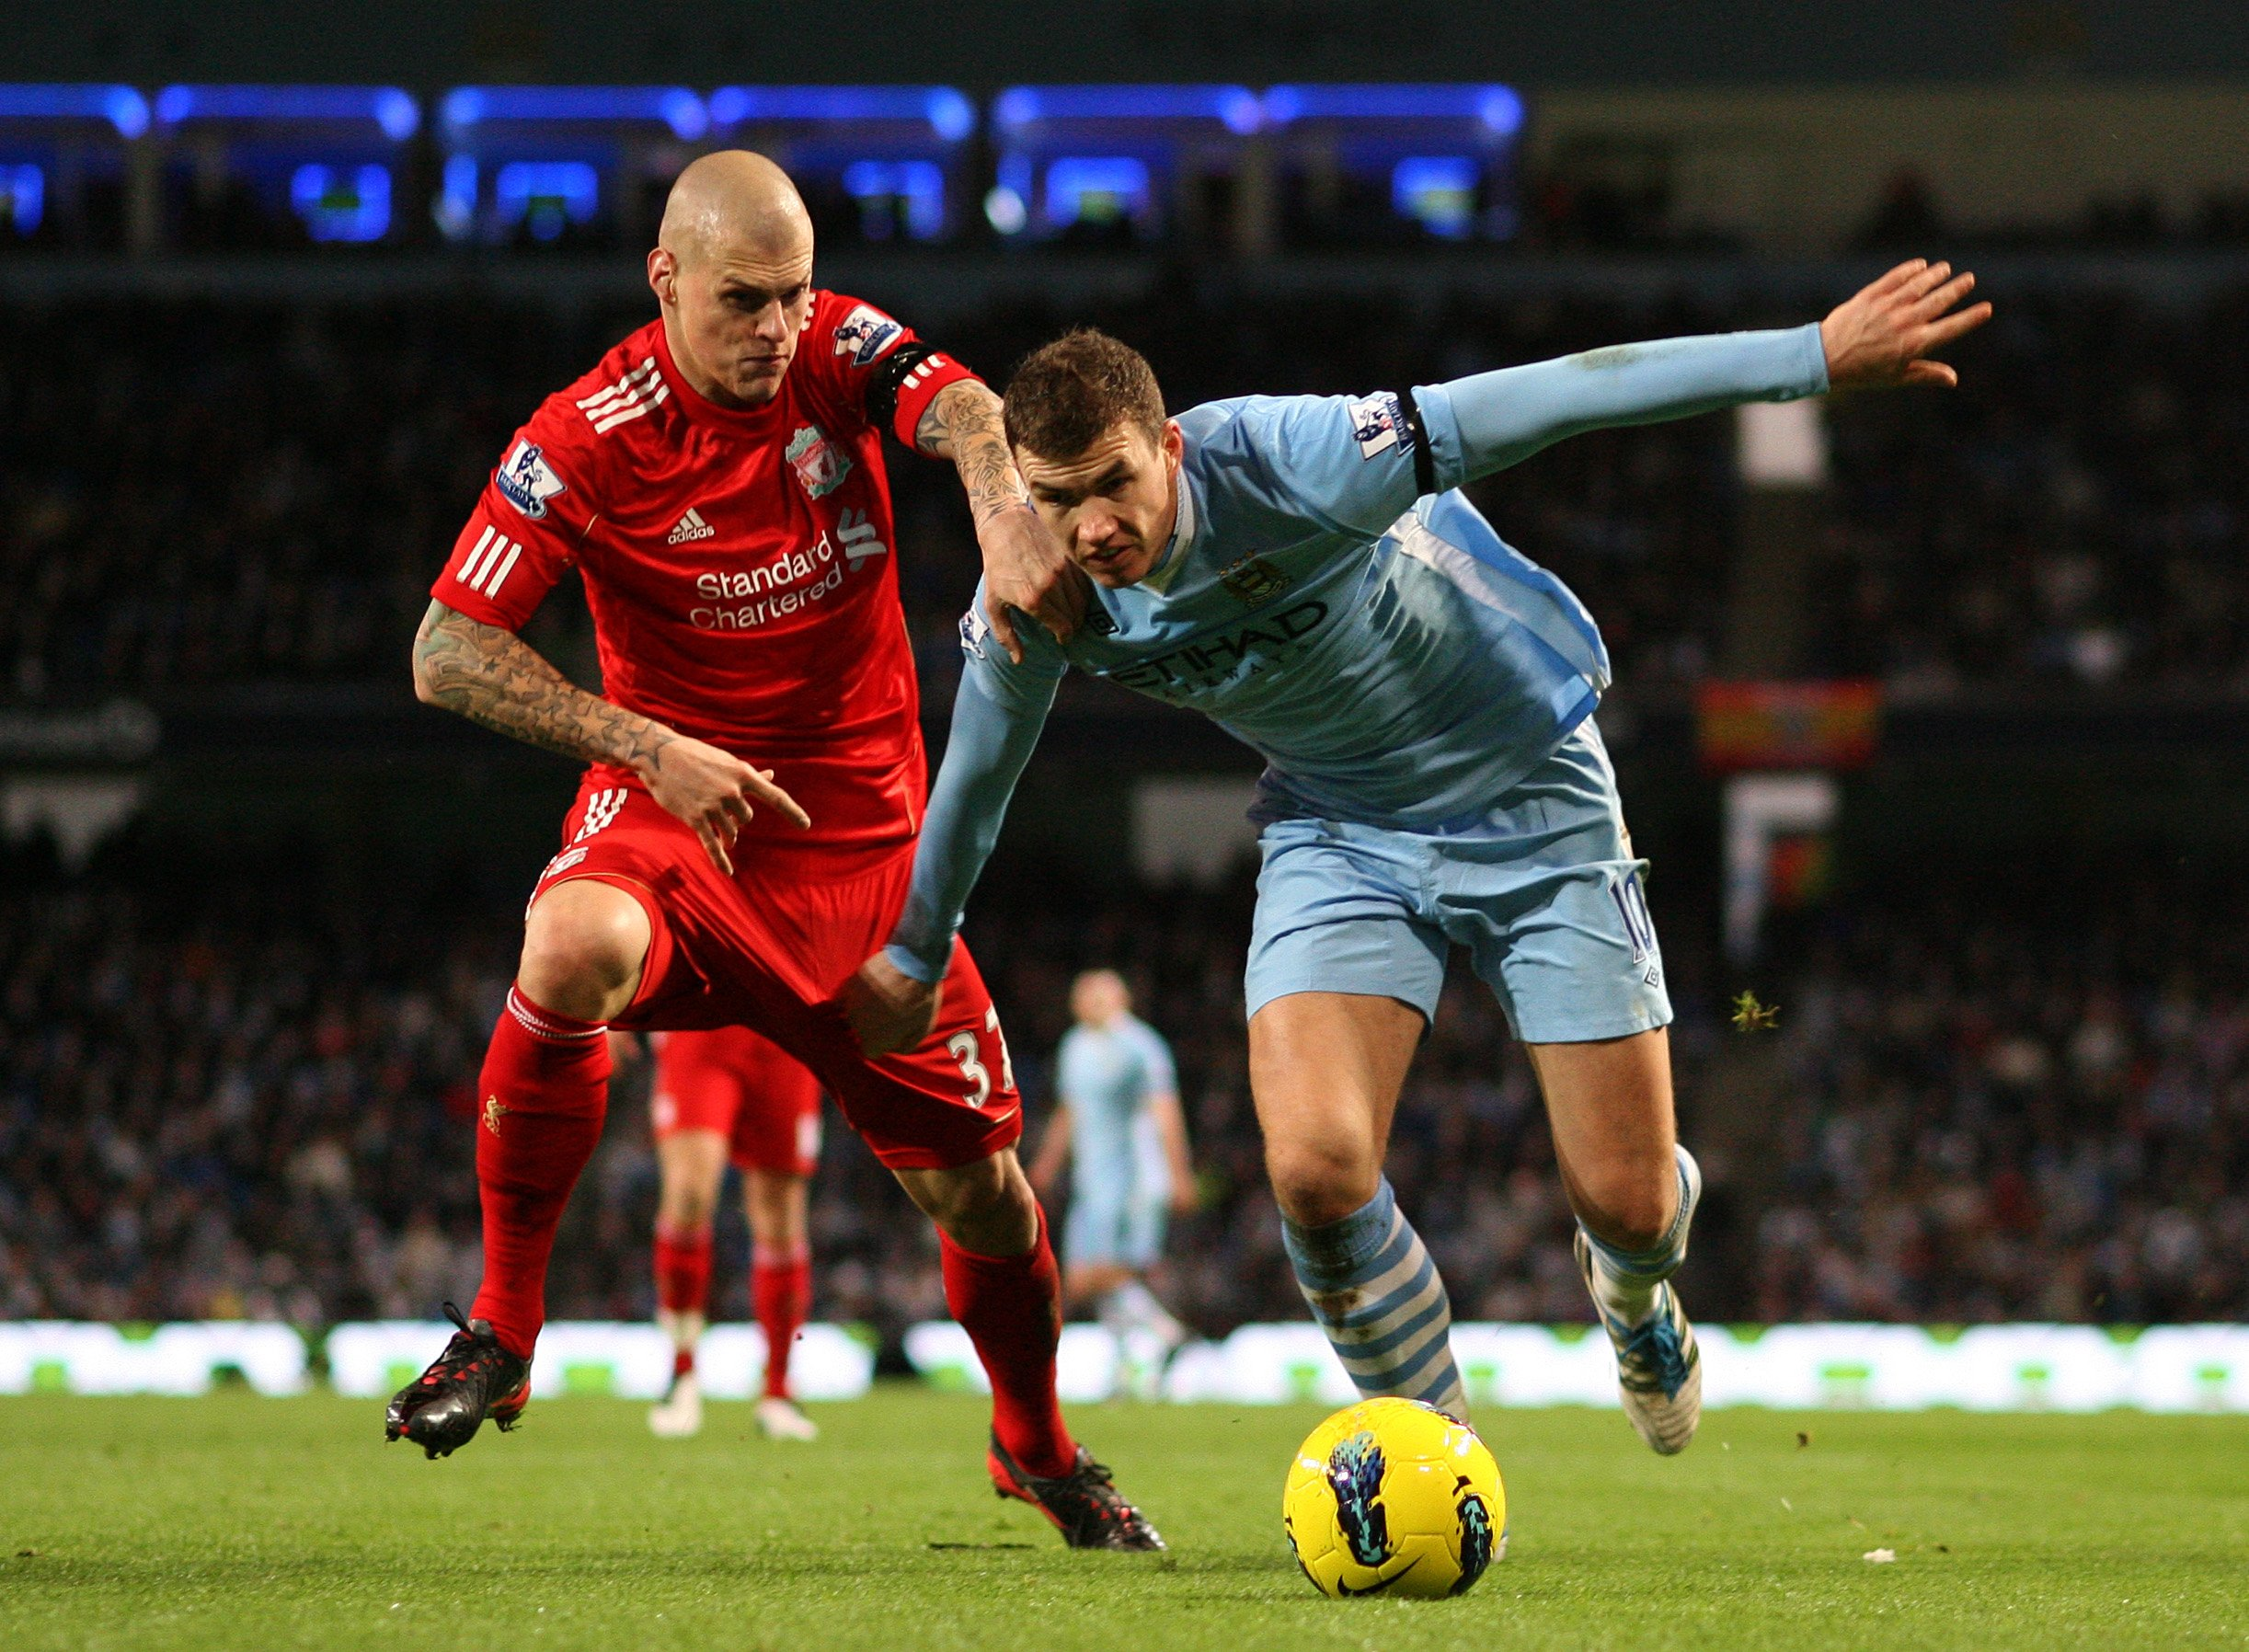 Man City vs Liverpool Dzeko vs Skrtel Betting Preview